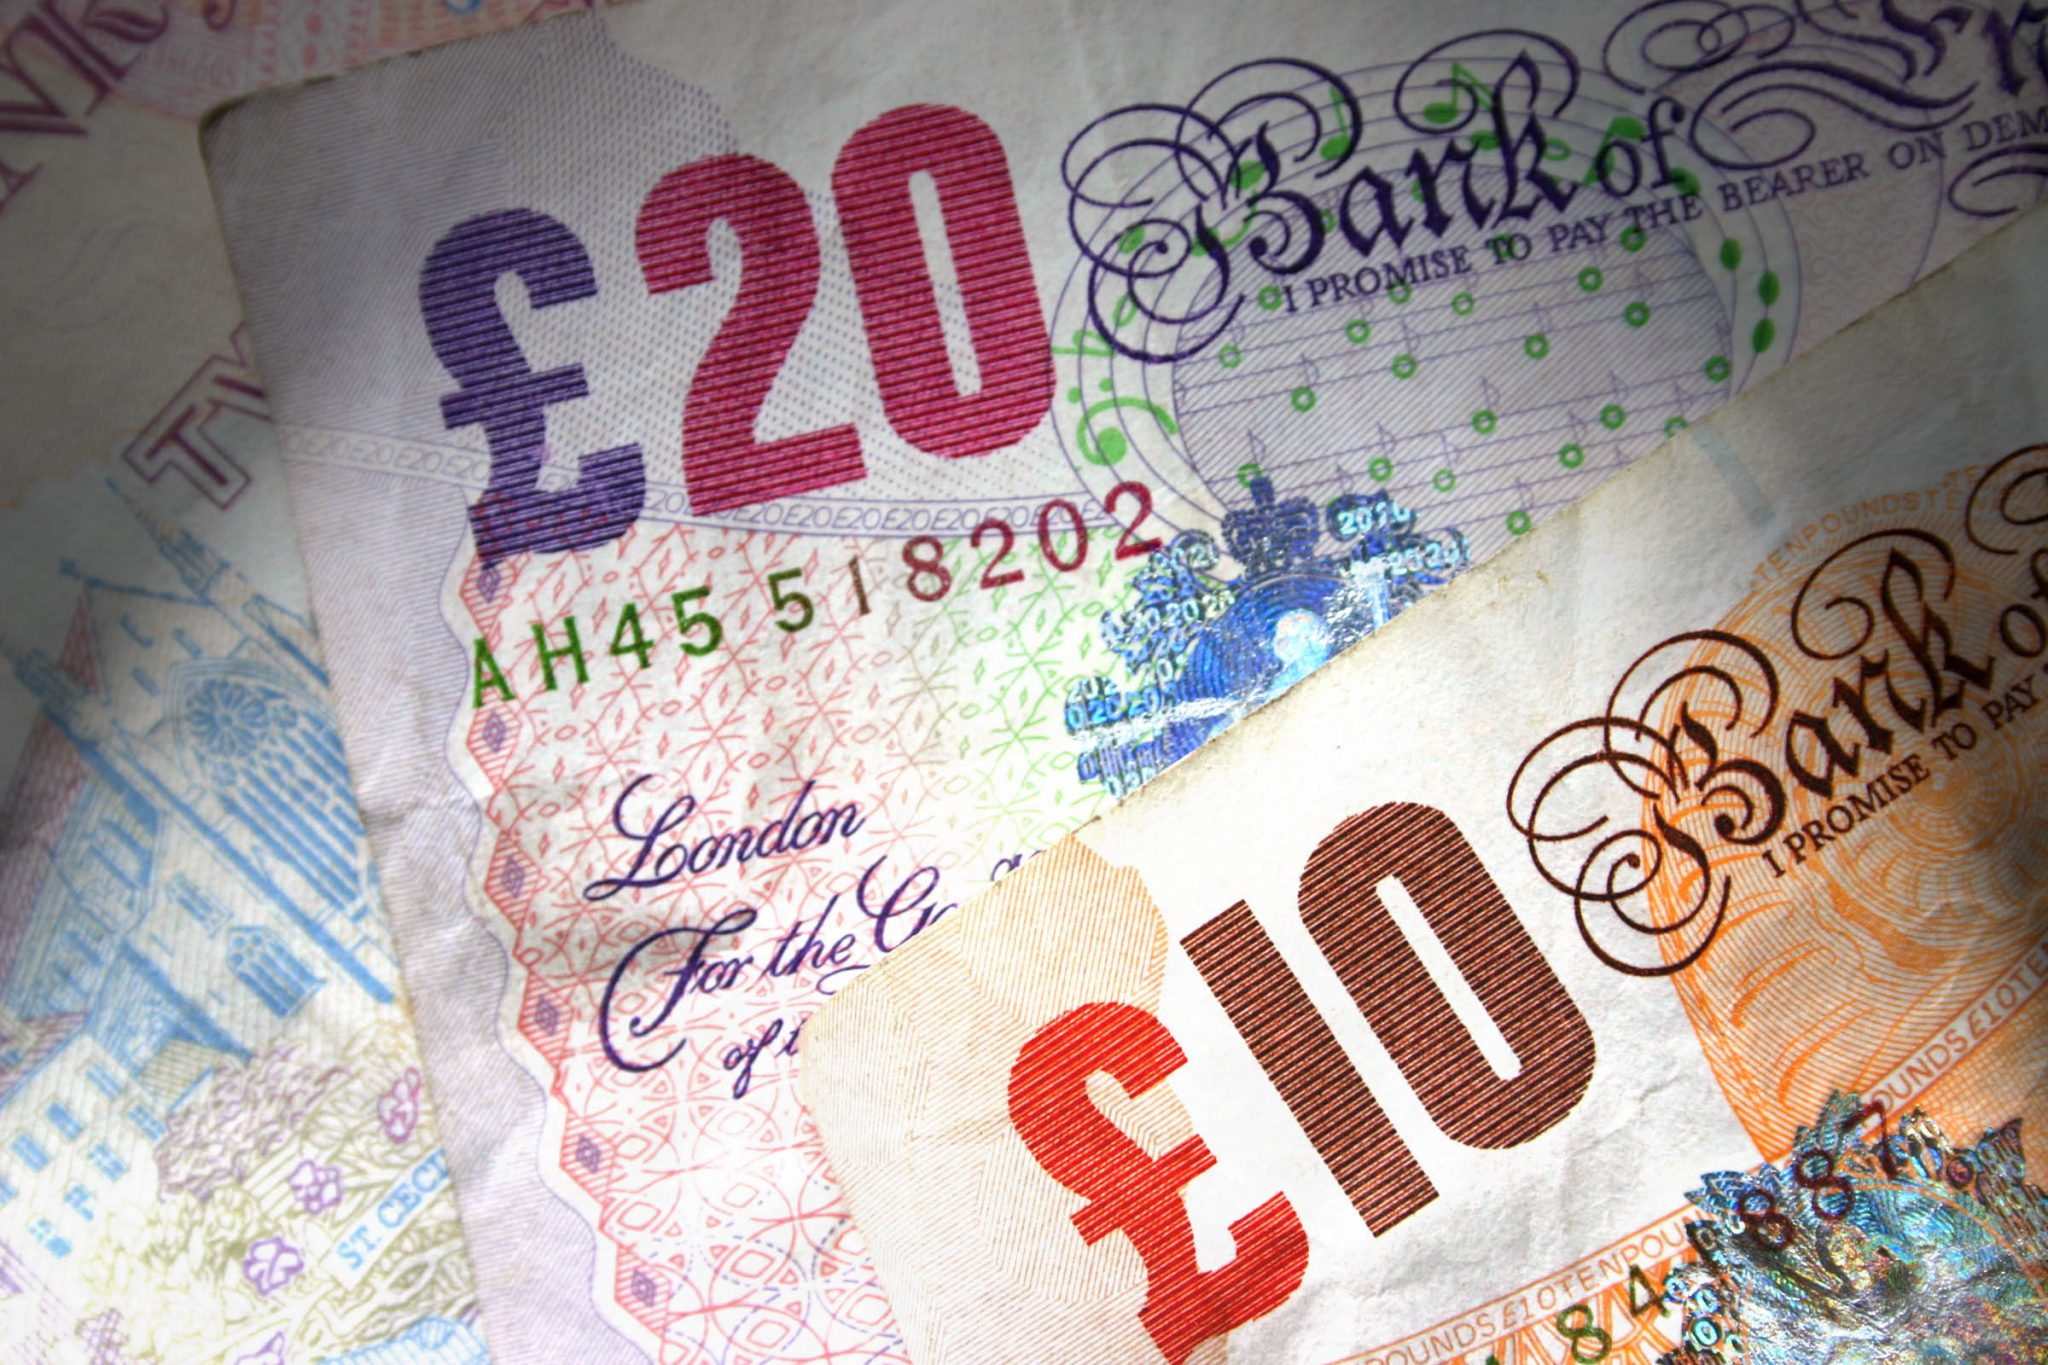 Landlords selling houses - 2016 Capital Gains Tax - image of banknotes